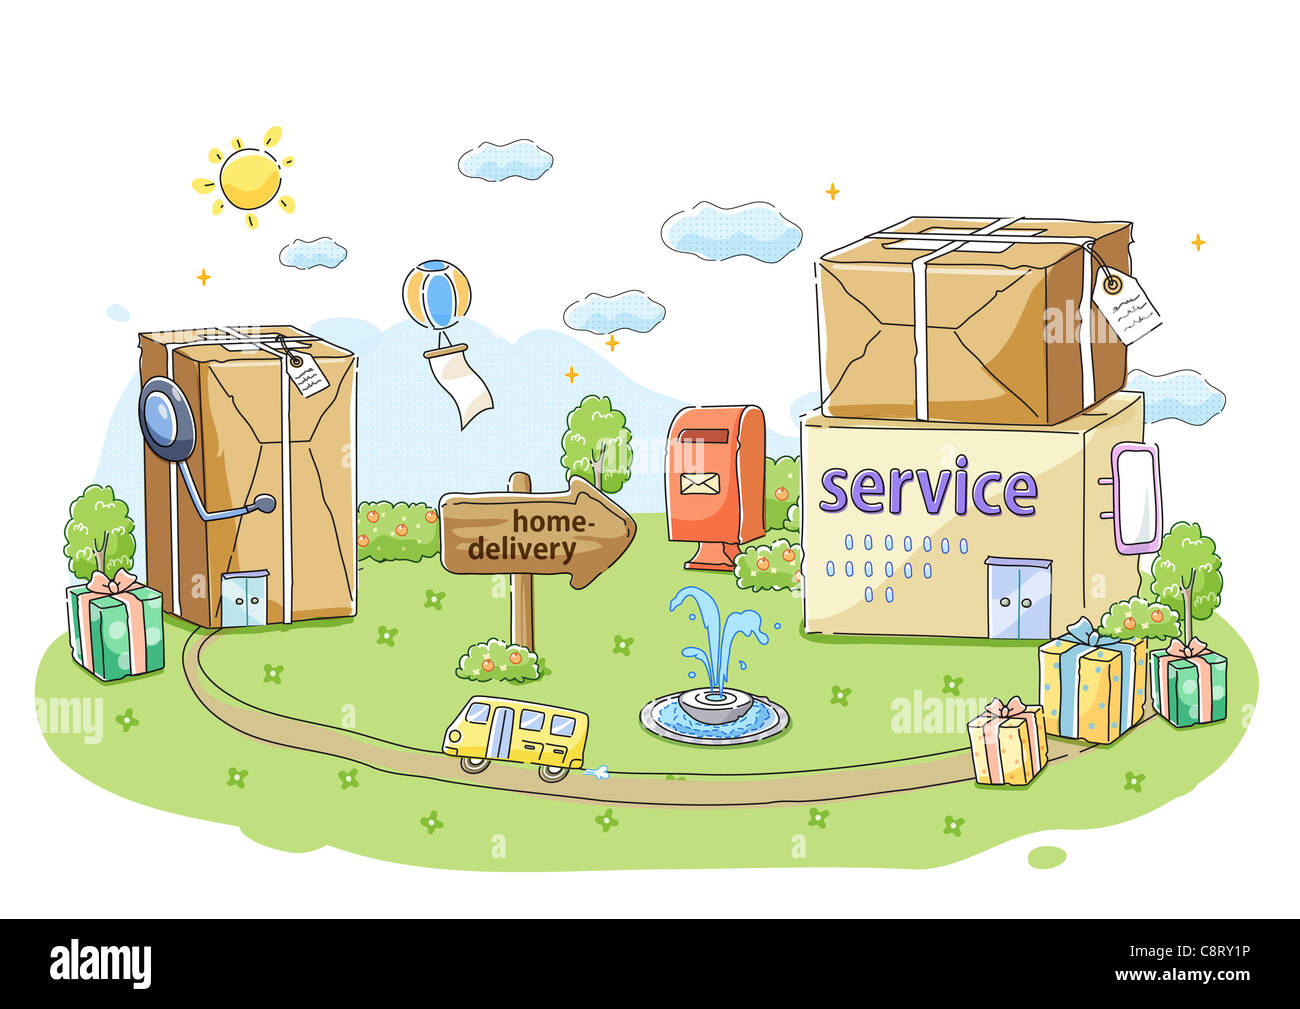 Concept of conveying and delivering messages - Stock Image